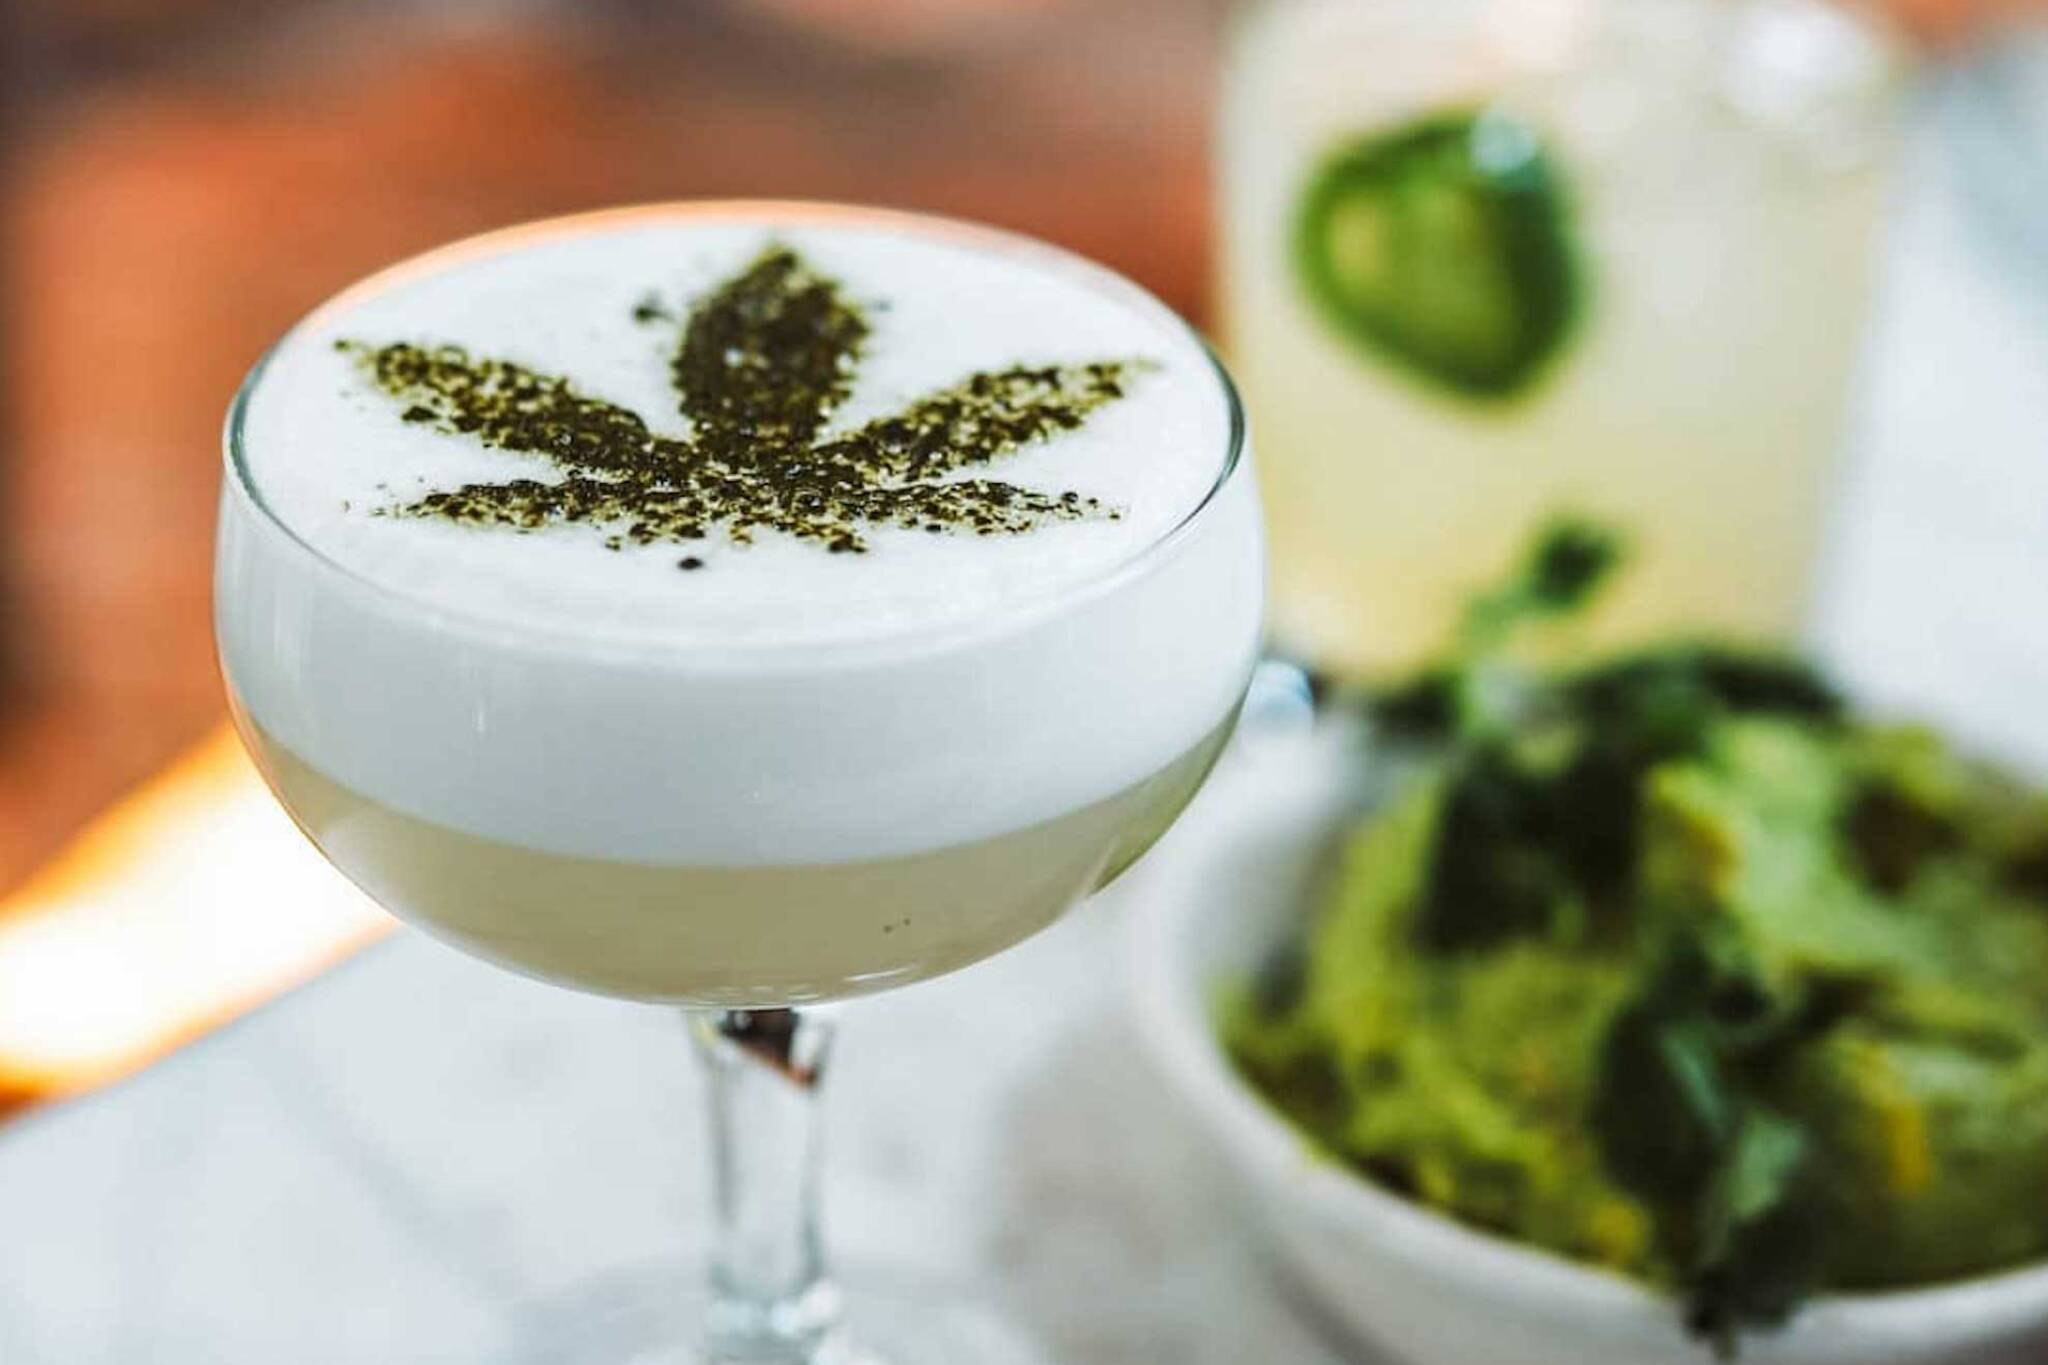 cannabis cocktails toronto